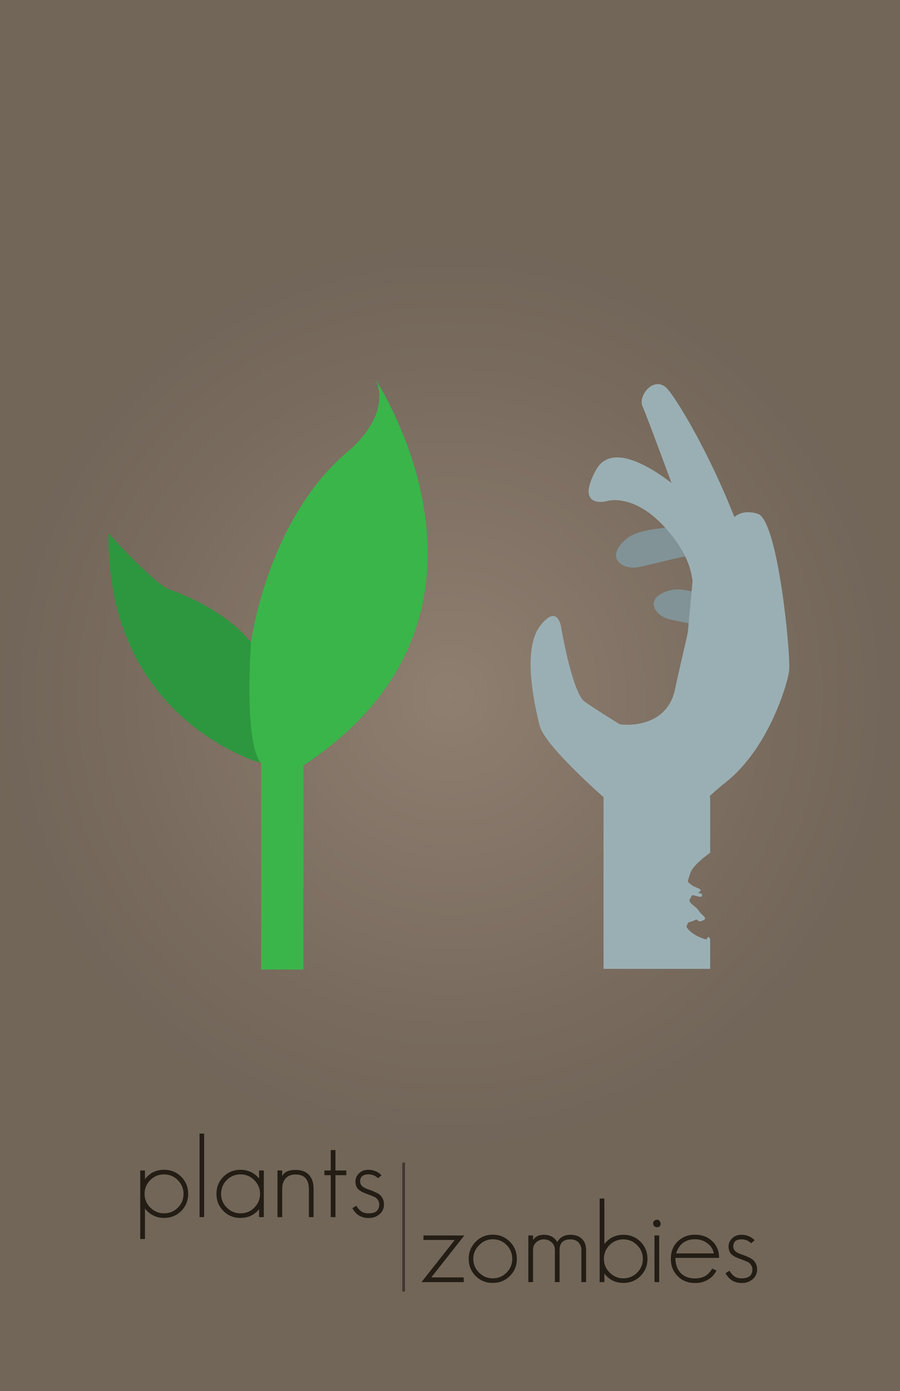 plants_vs__zombies_minimalist_by_tdj1337-d3jpu7j